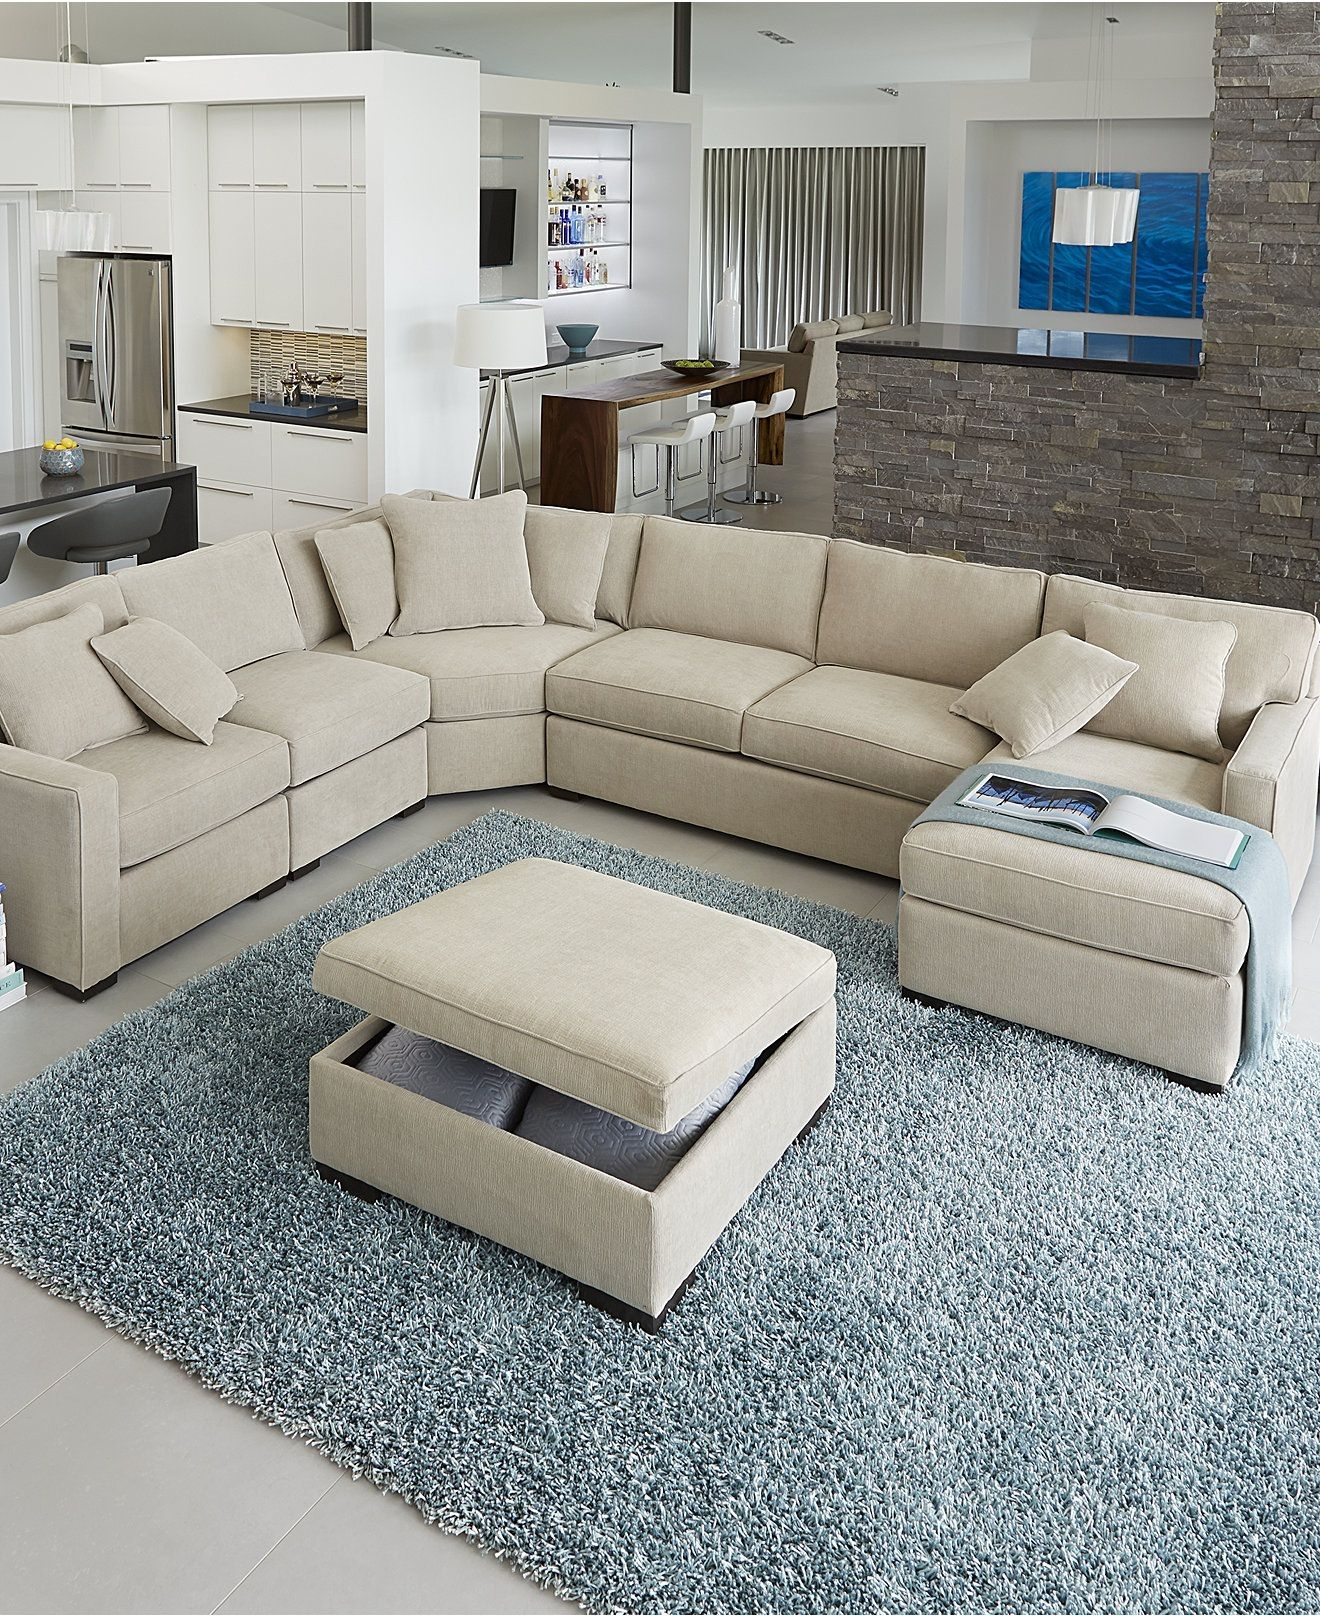 Radley Fabric Sectional Sofa Collection, Created For Macy's | Radley with Macys Sectional Sofas (Image 6 of 10)